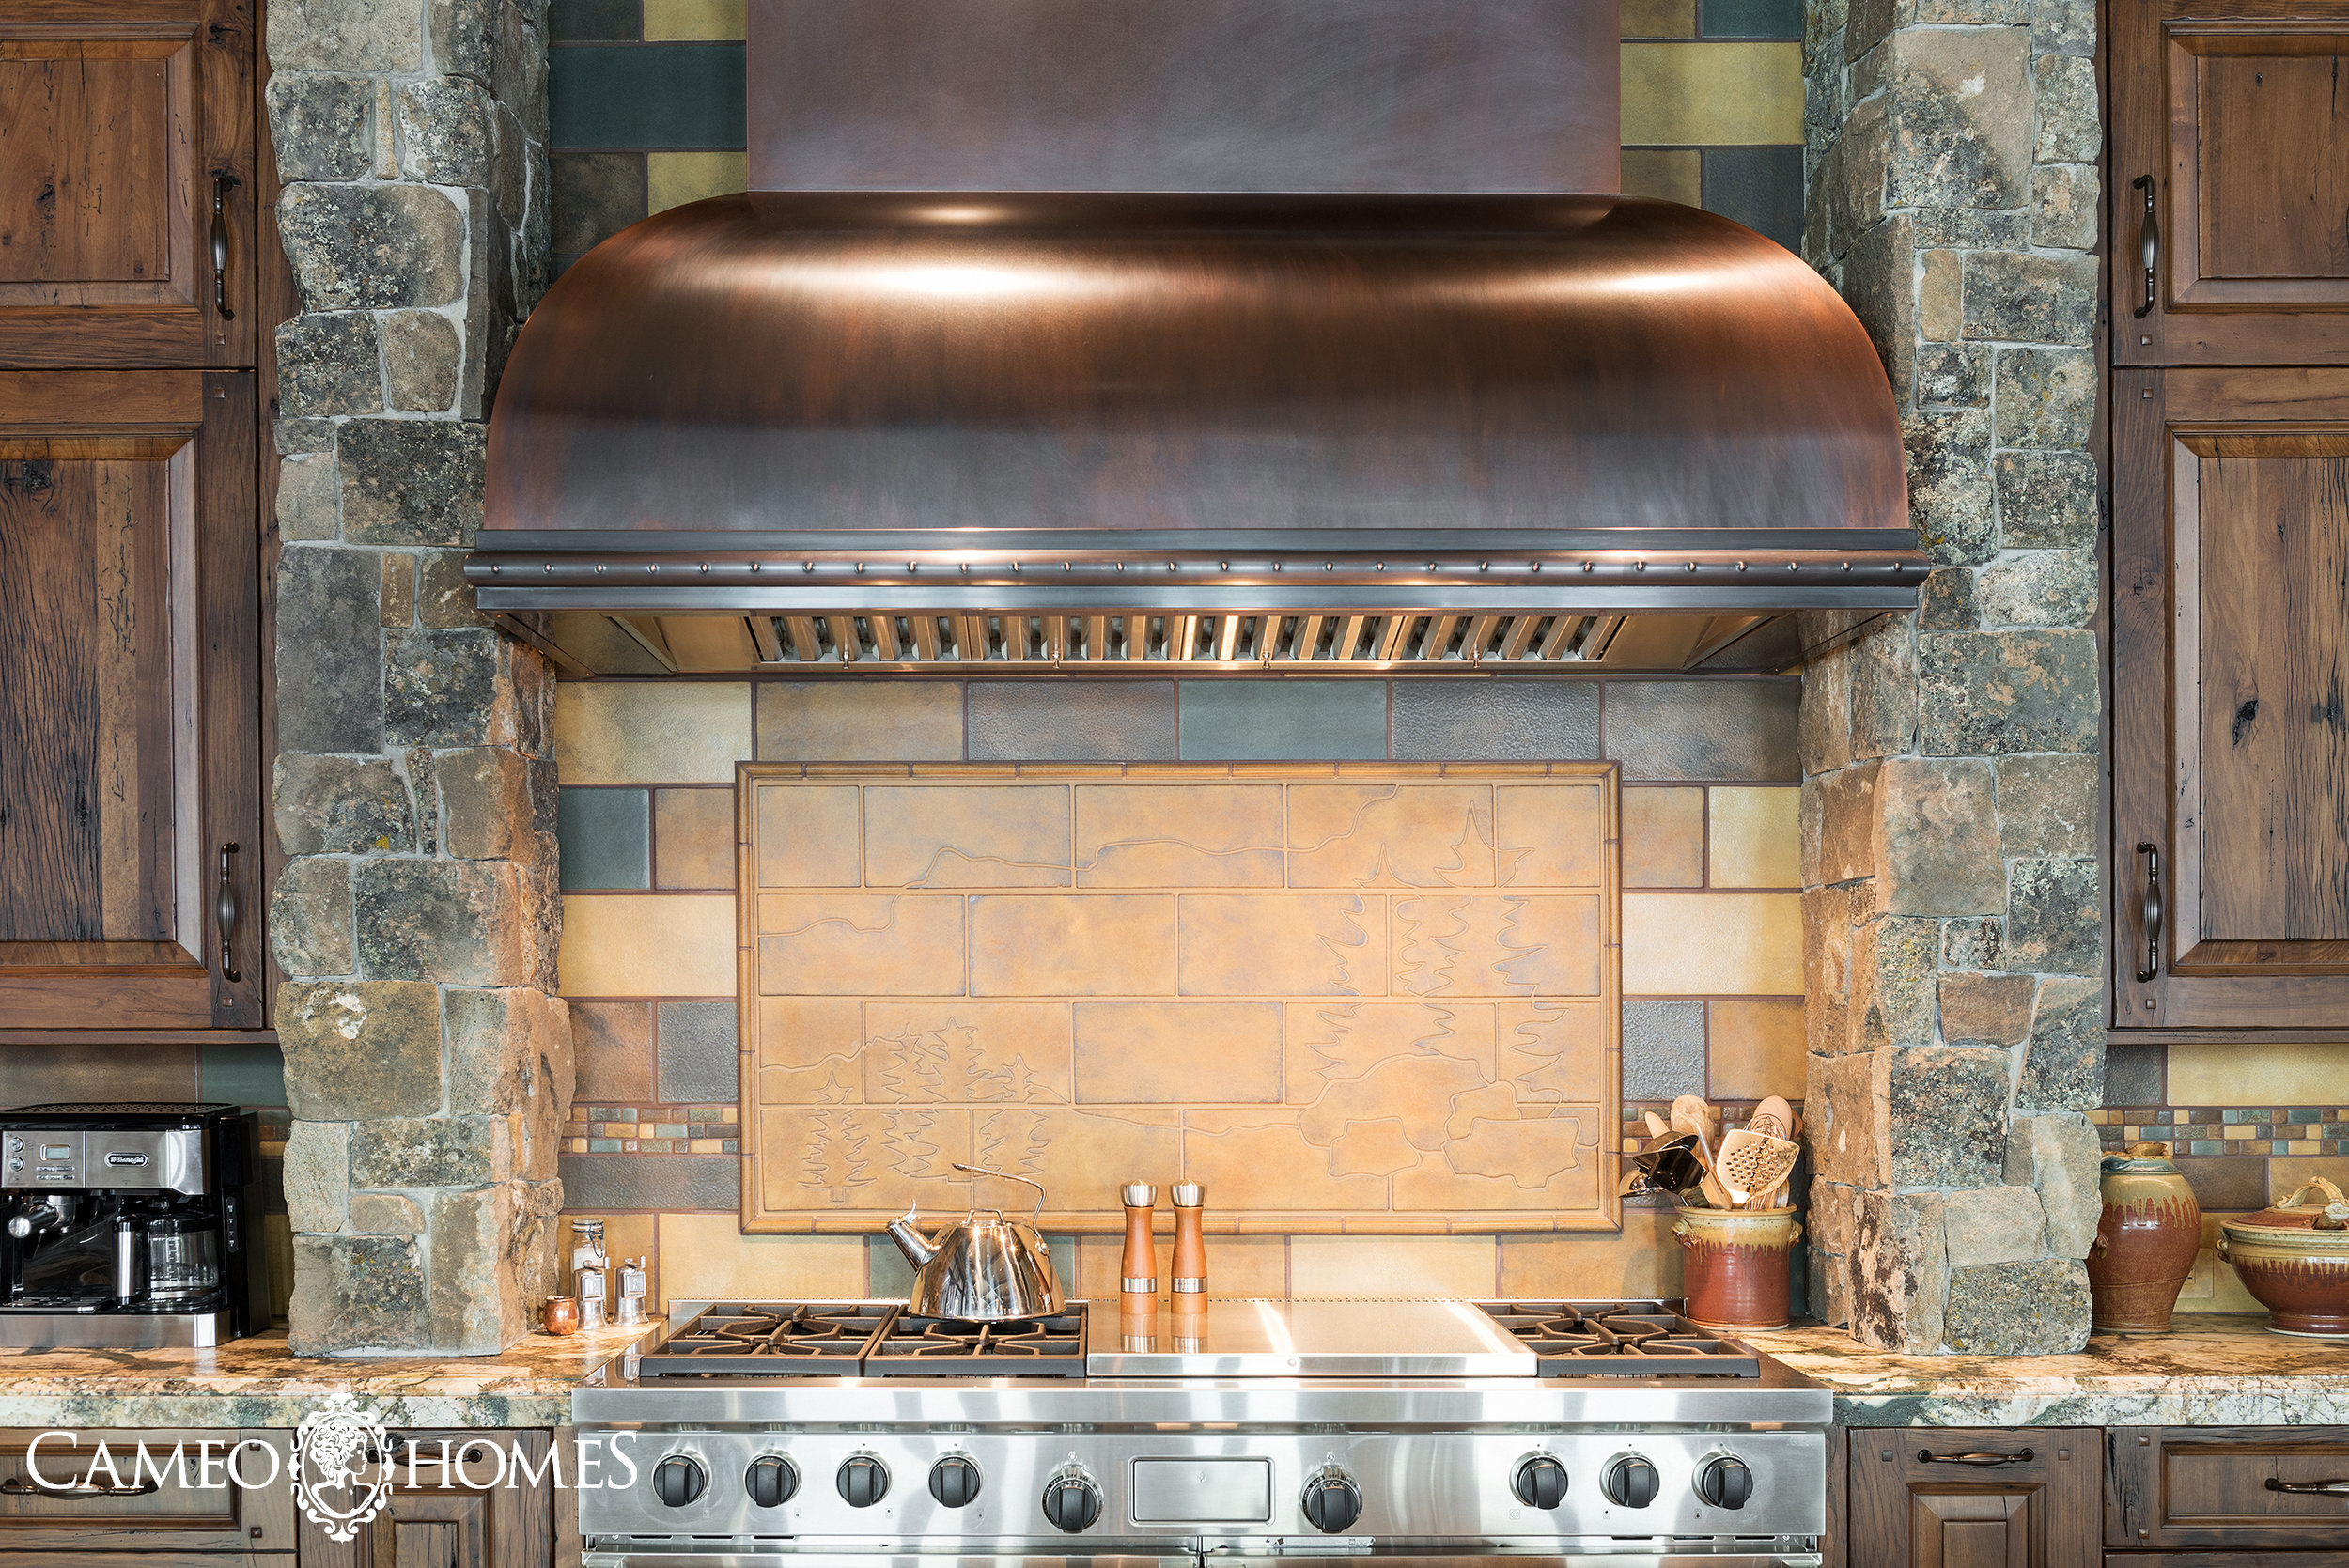 Range Hood of the Kitchen